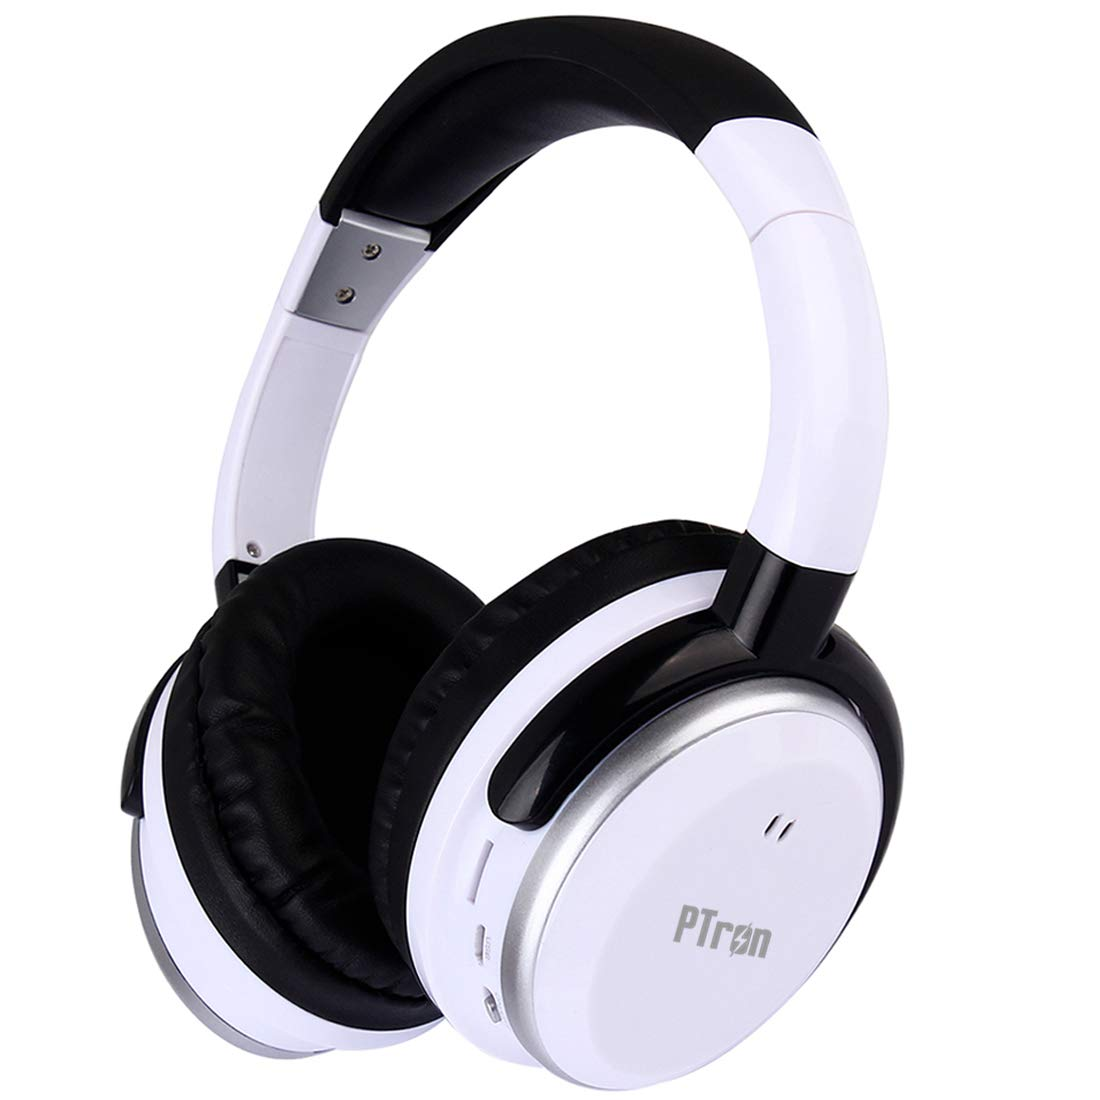 PTron Rodeo Over-Ear Bluetooth Headphones (White)